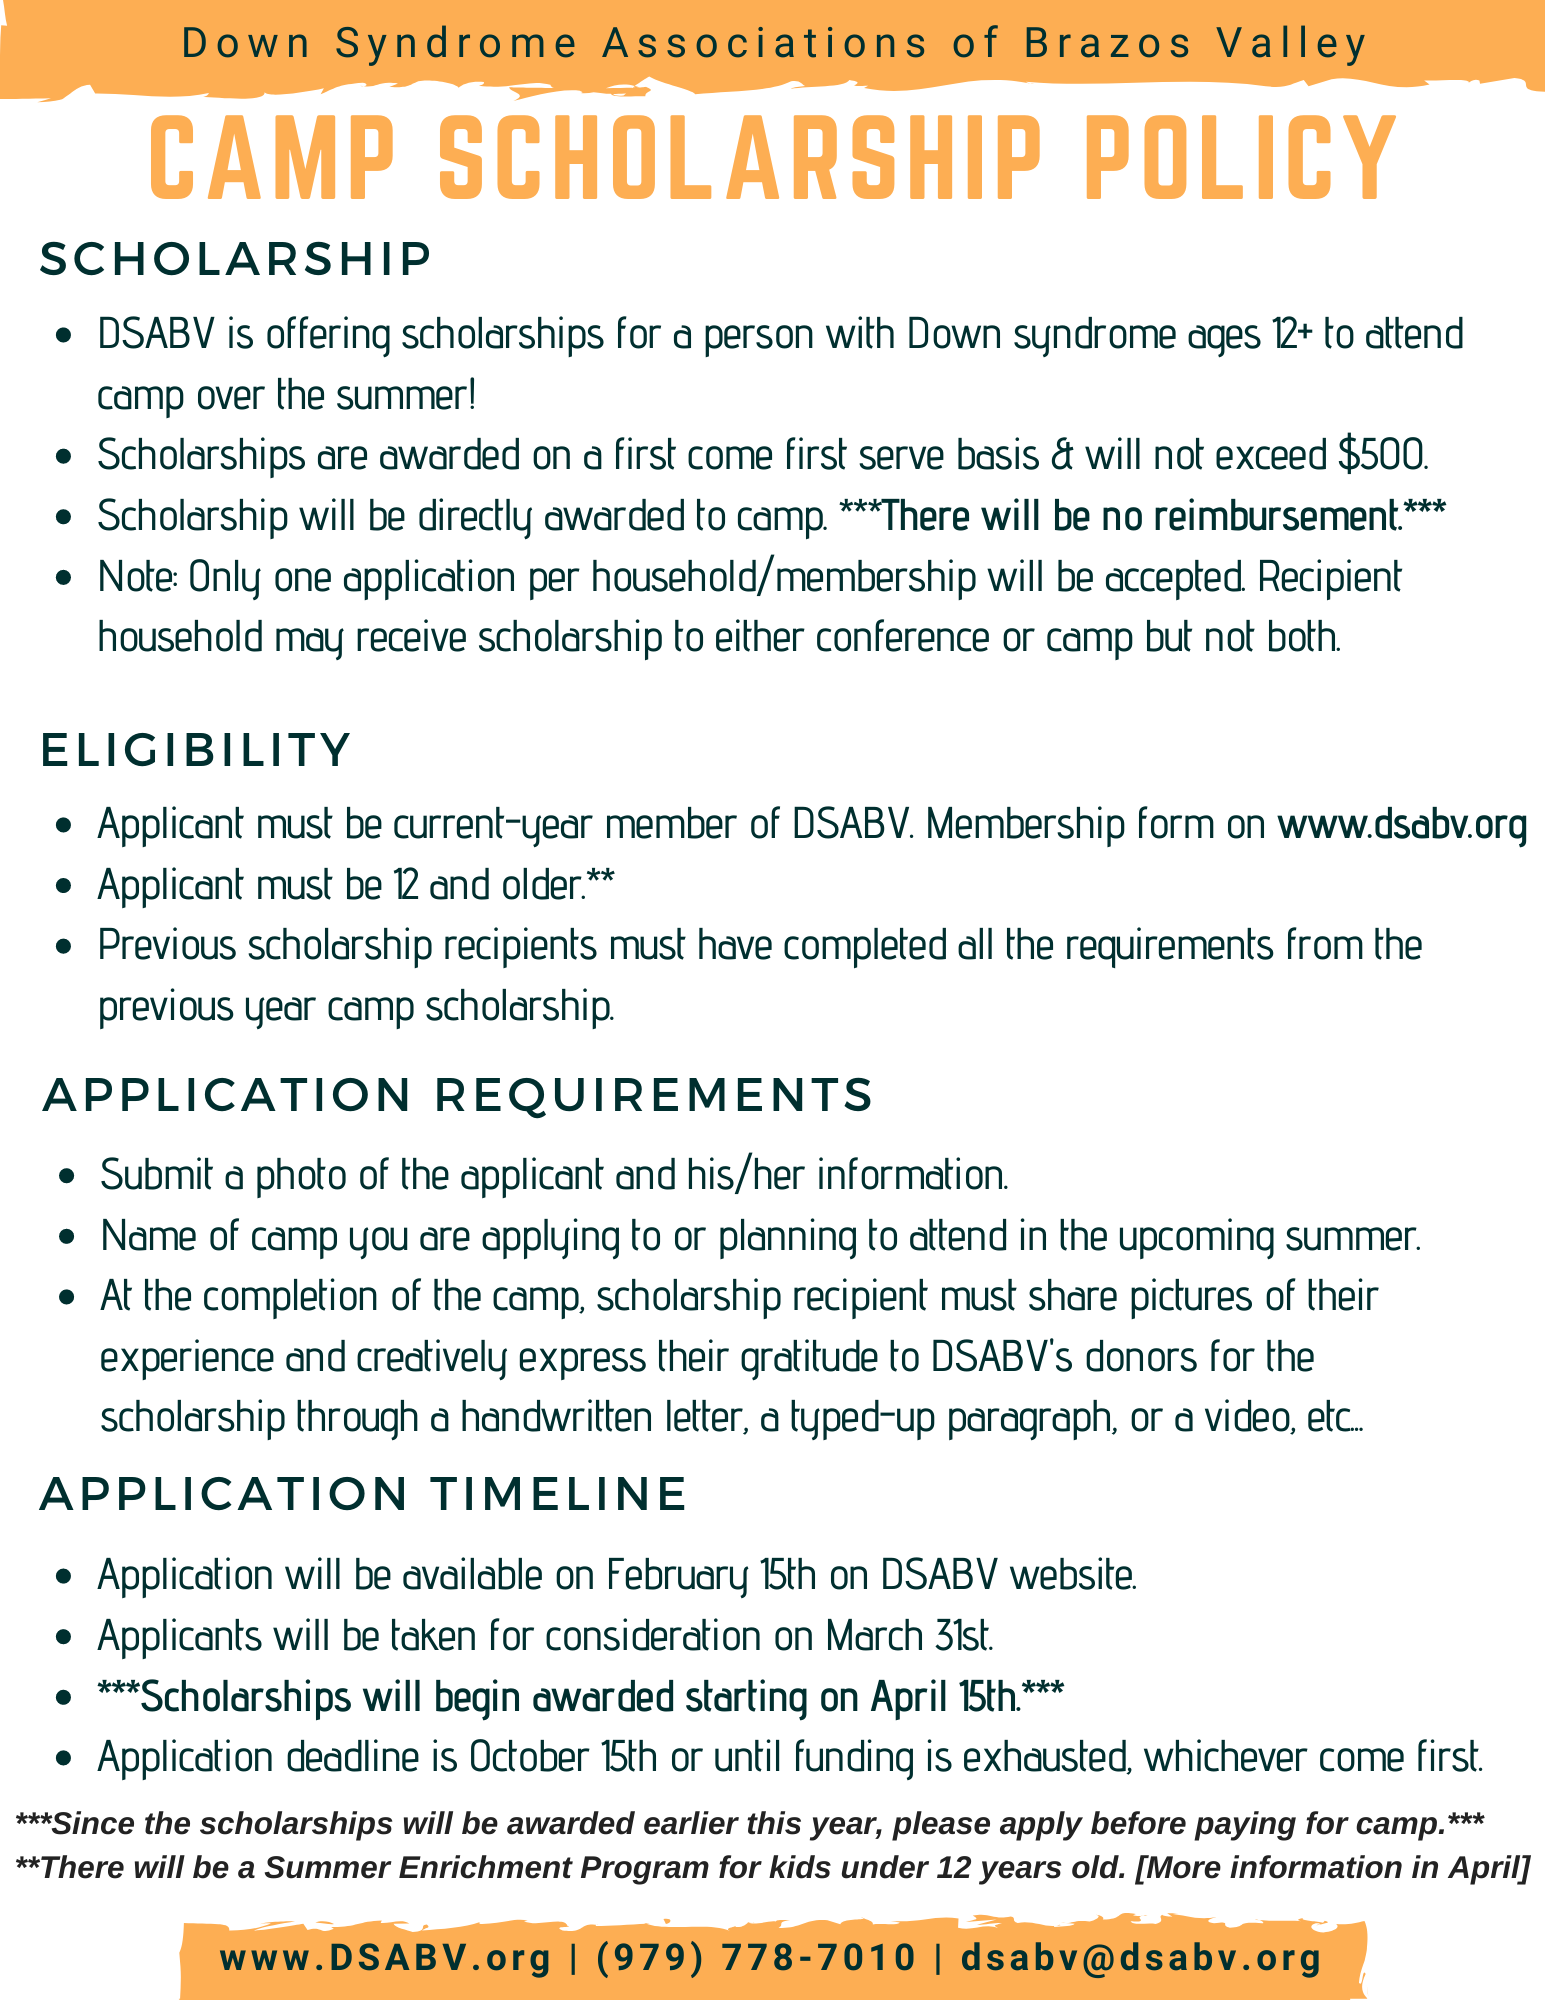 DSABV Camp stipend scholarship